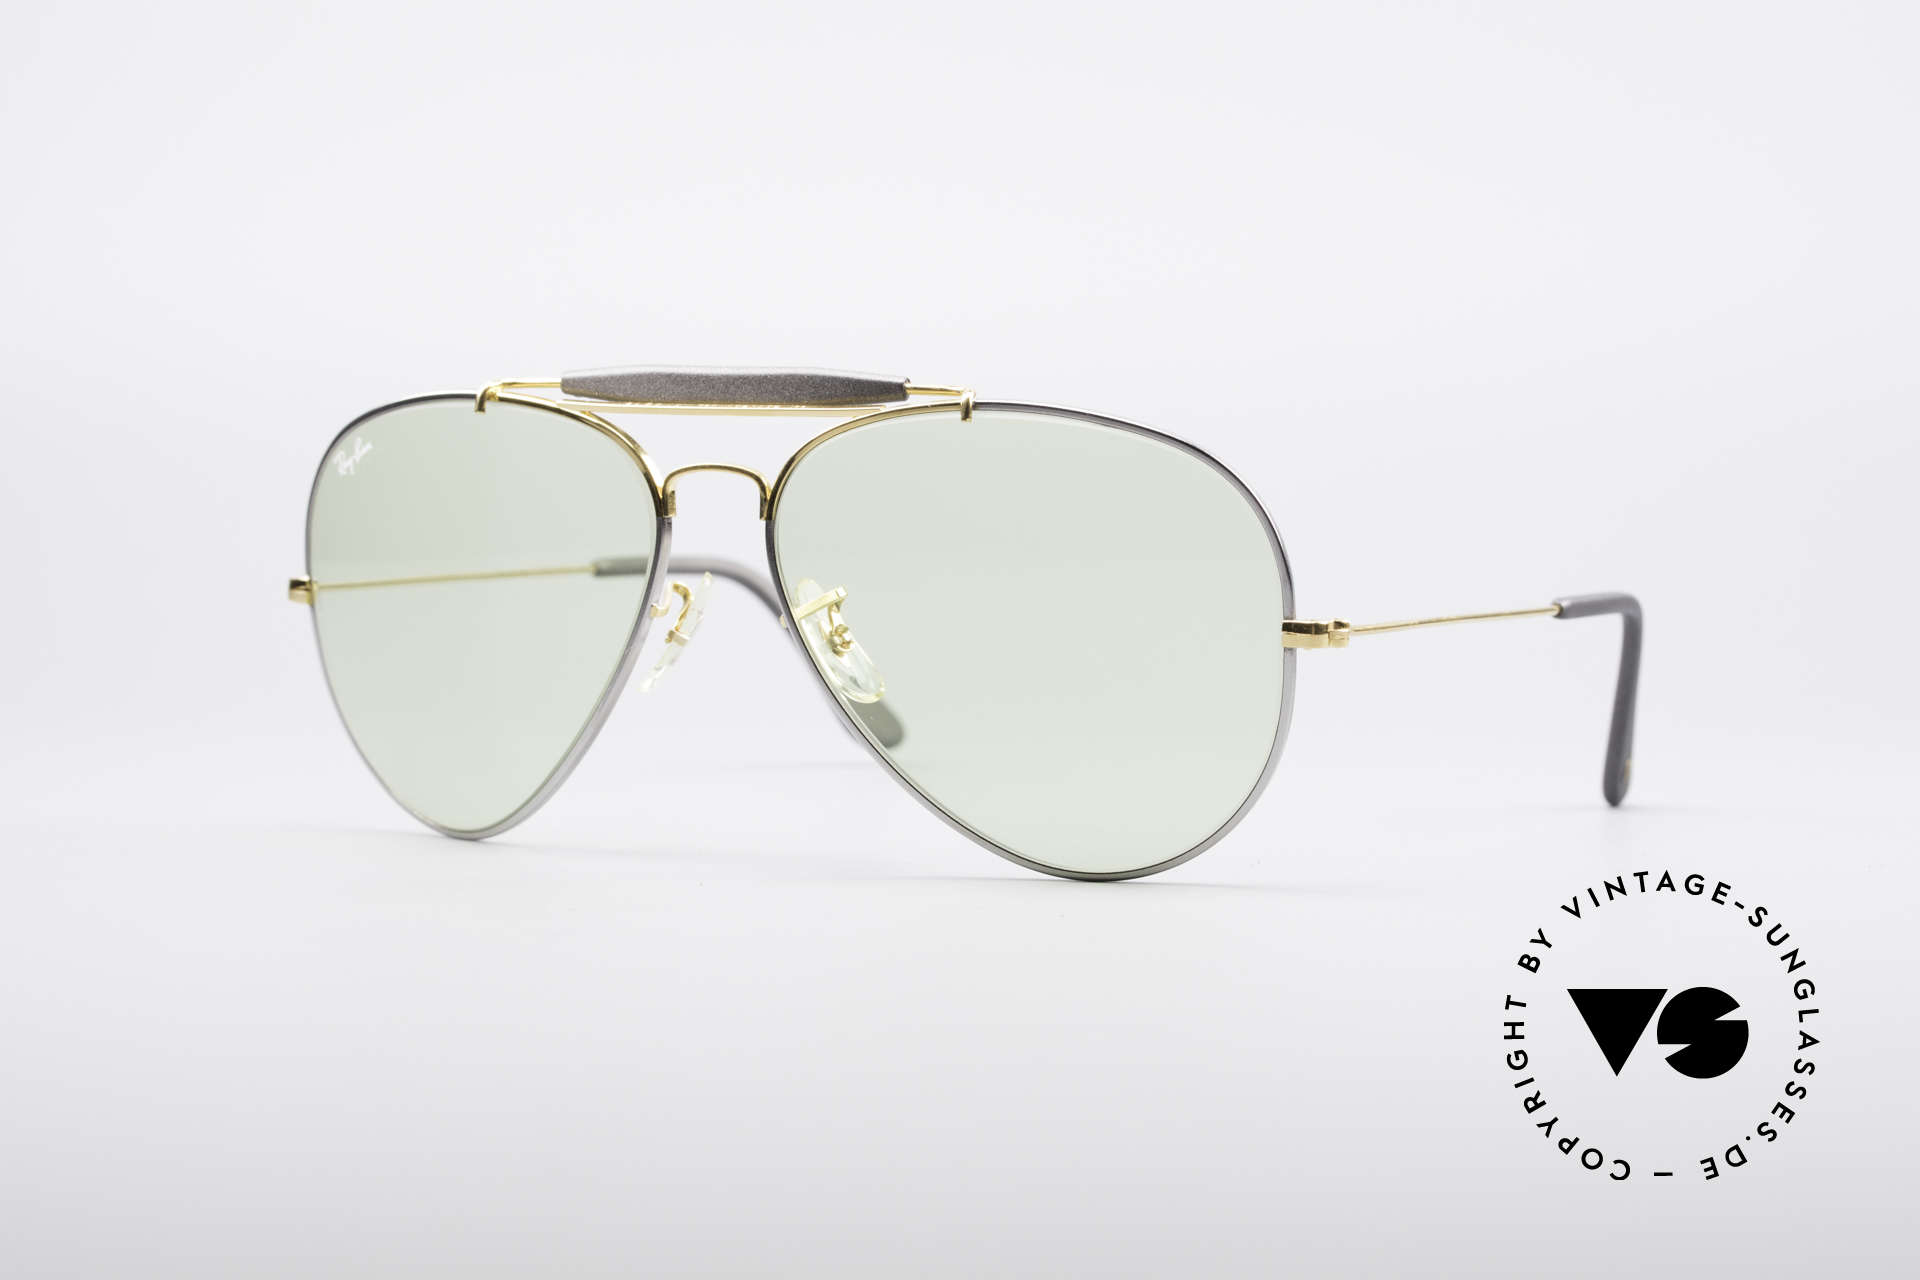 Ray Ban Outdoorsman II Precious Metals Changeable, costly vintage RAY-BAN B&L aviator sunglasses, Made for Men